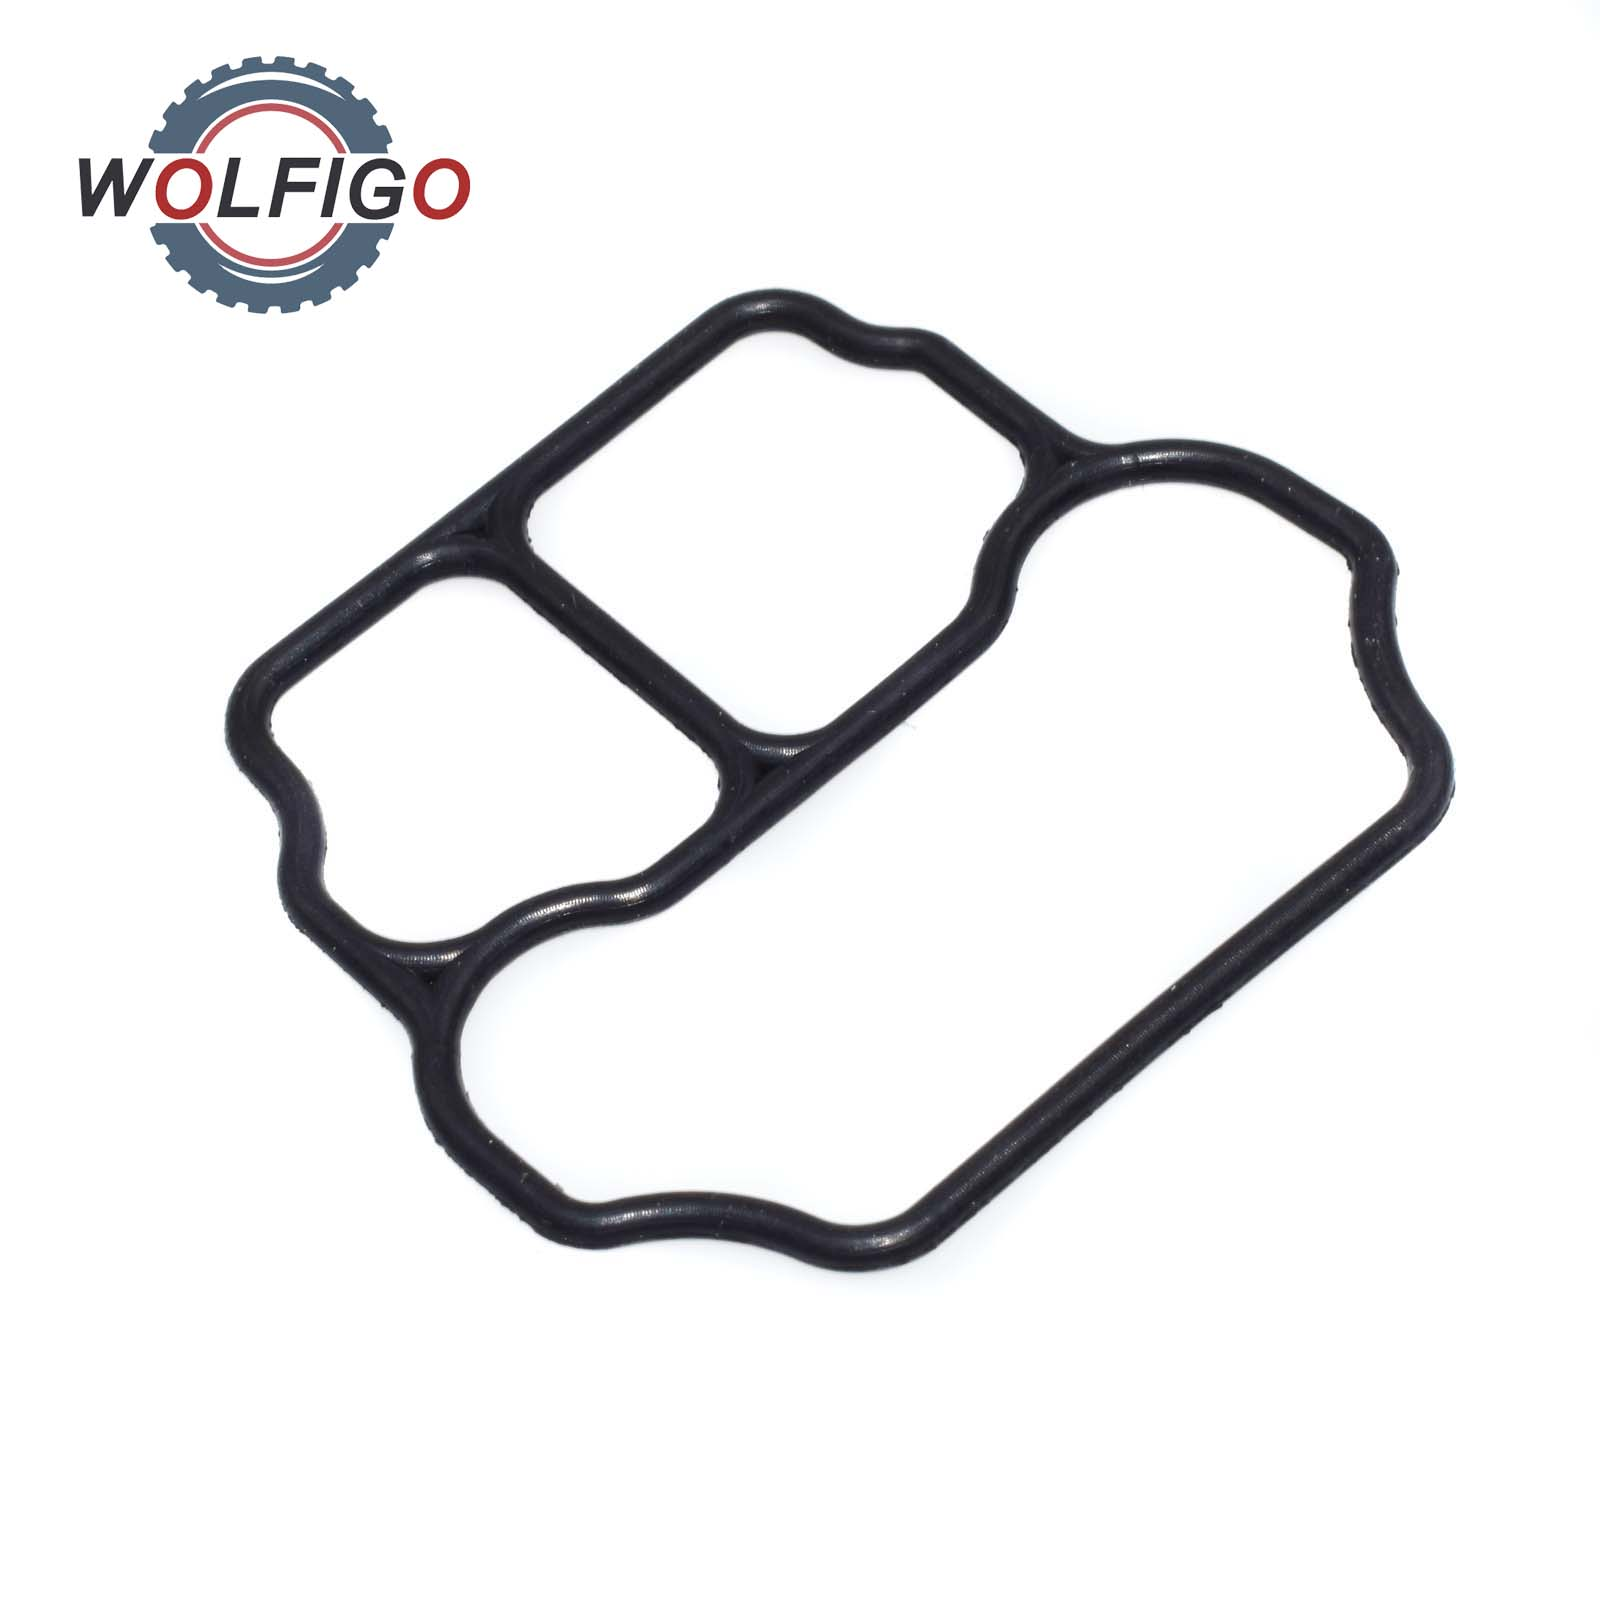 Wolfigo Fuel Injection Idle Air Control Valve Gasket For